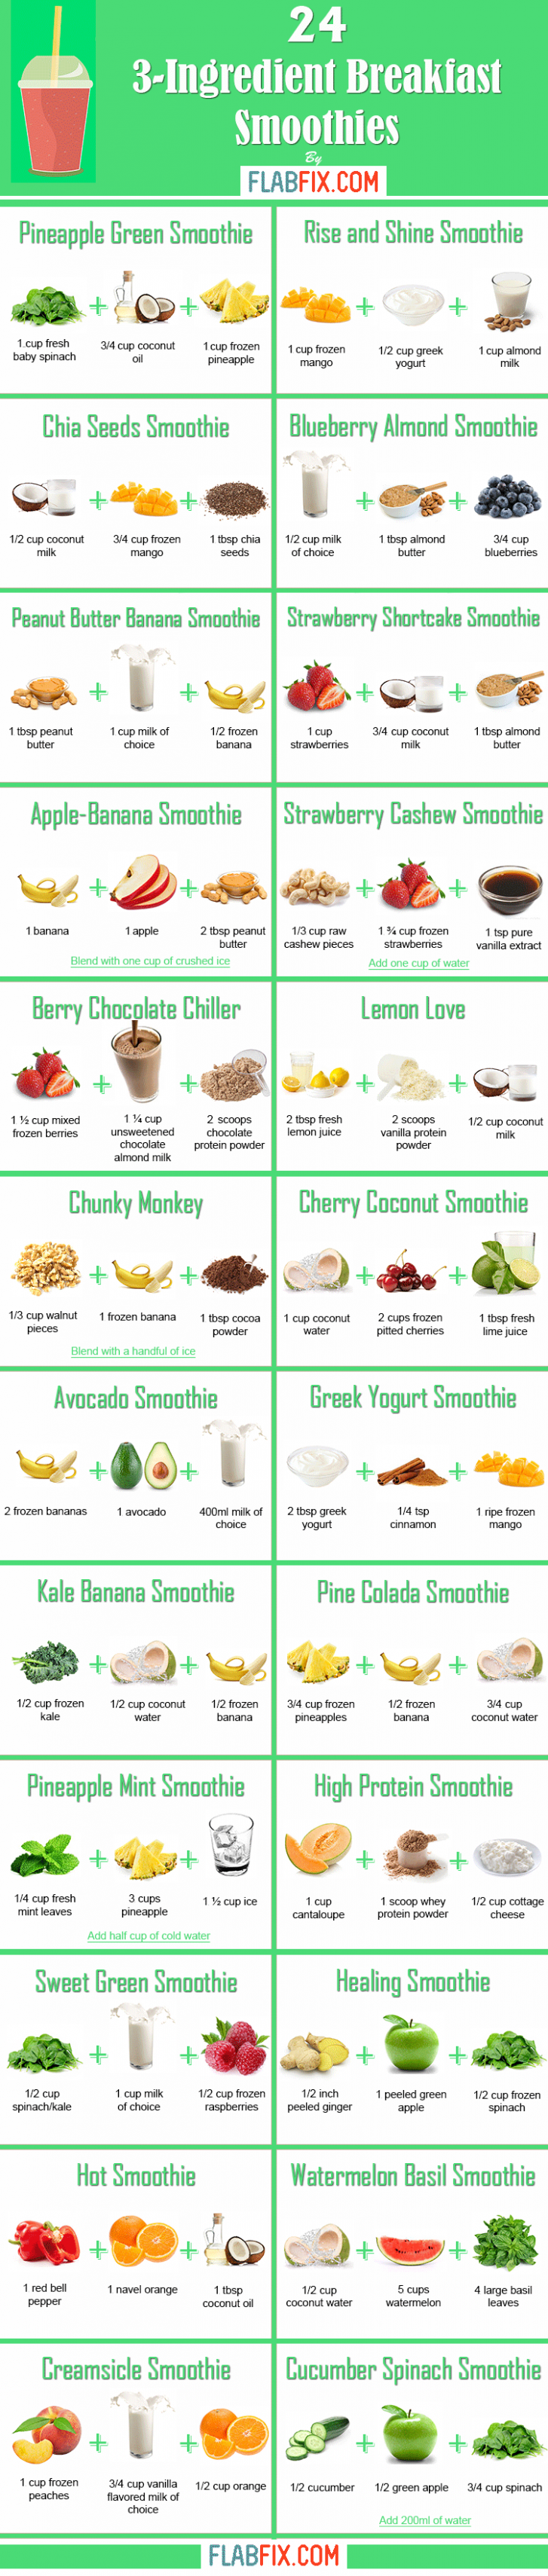 8 8-Ingredient Breakfast Smoothies for Weight Loss - Flab Fix - Smoothie Recipes Weight Loss Diet